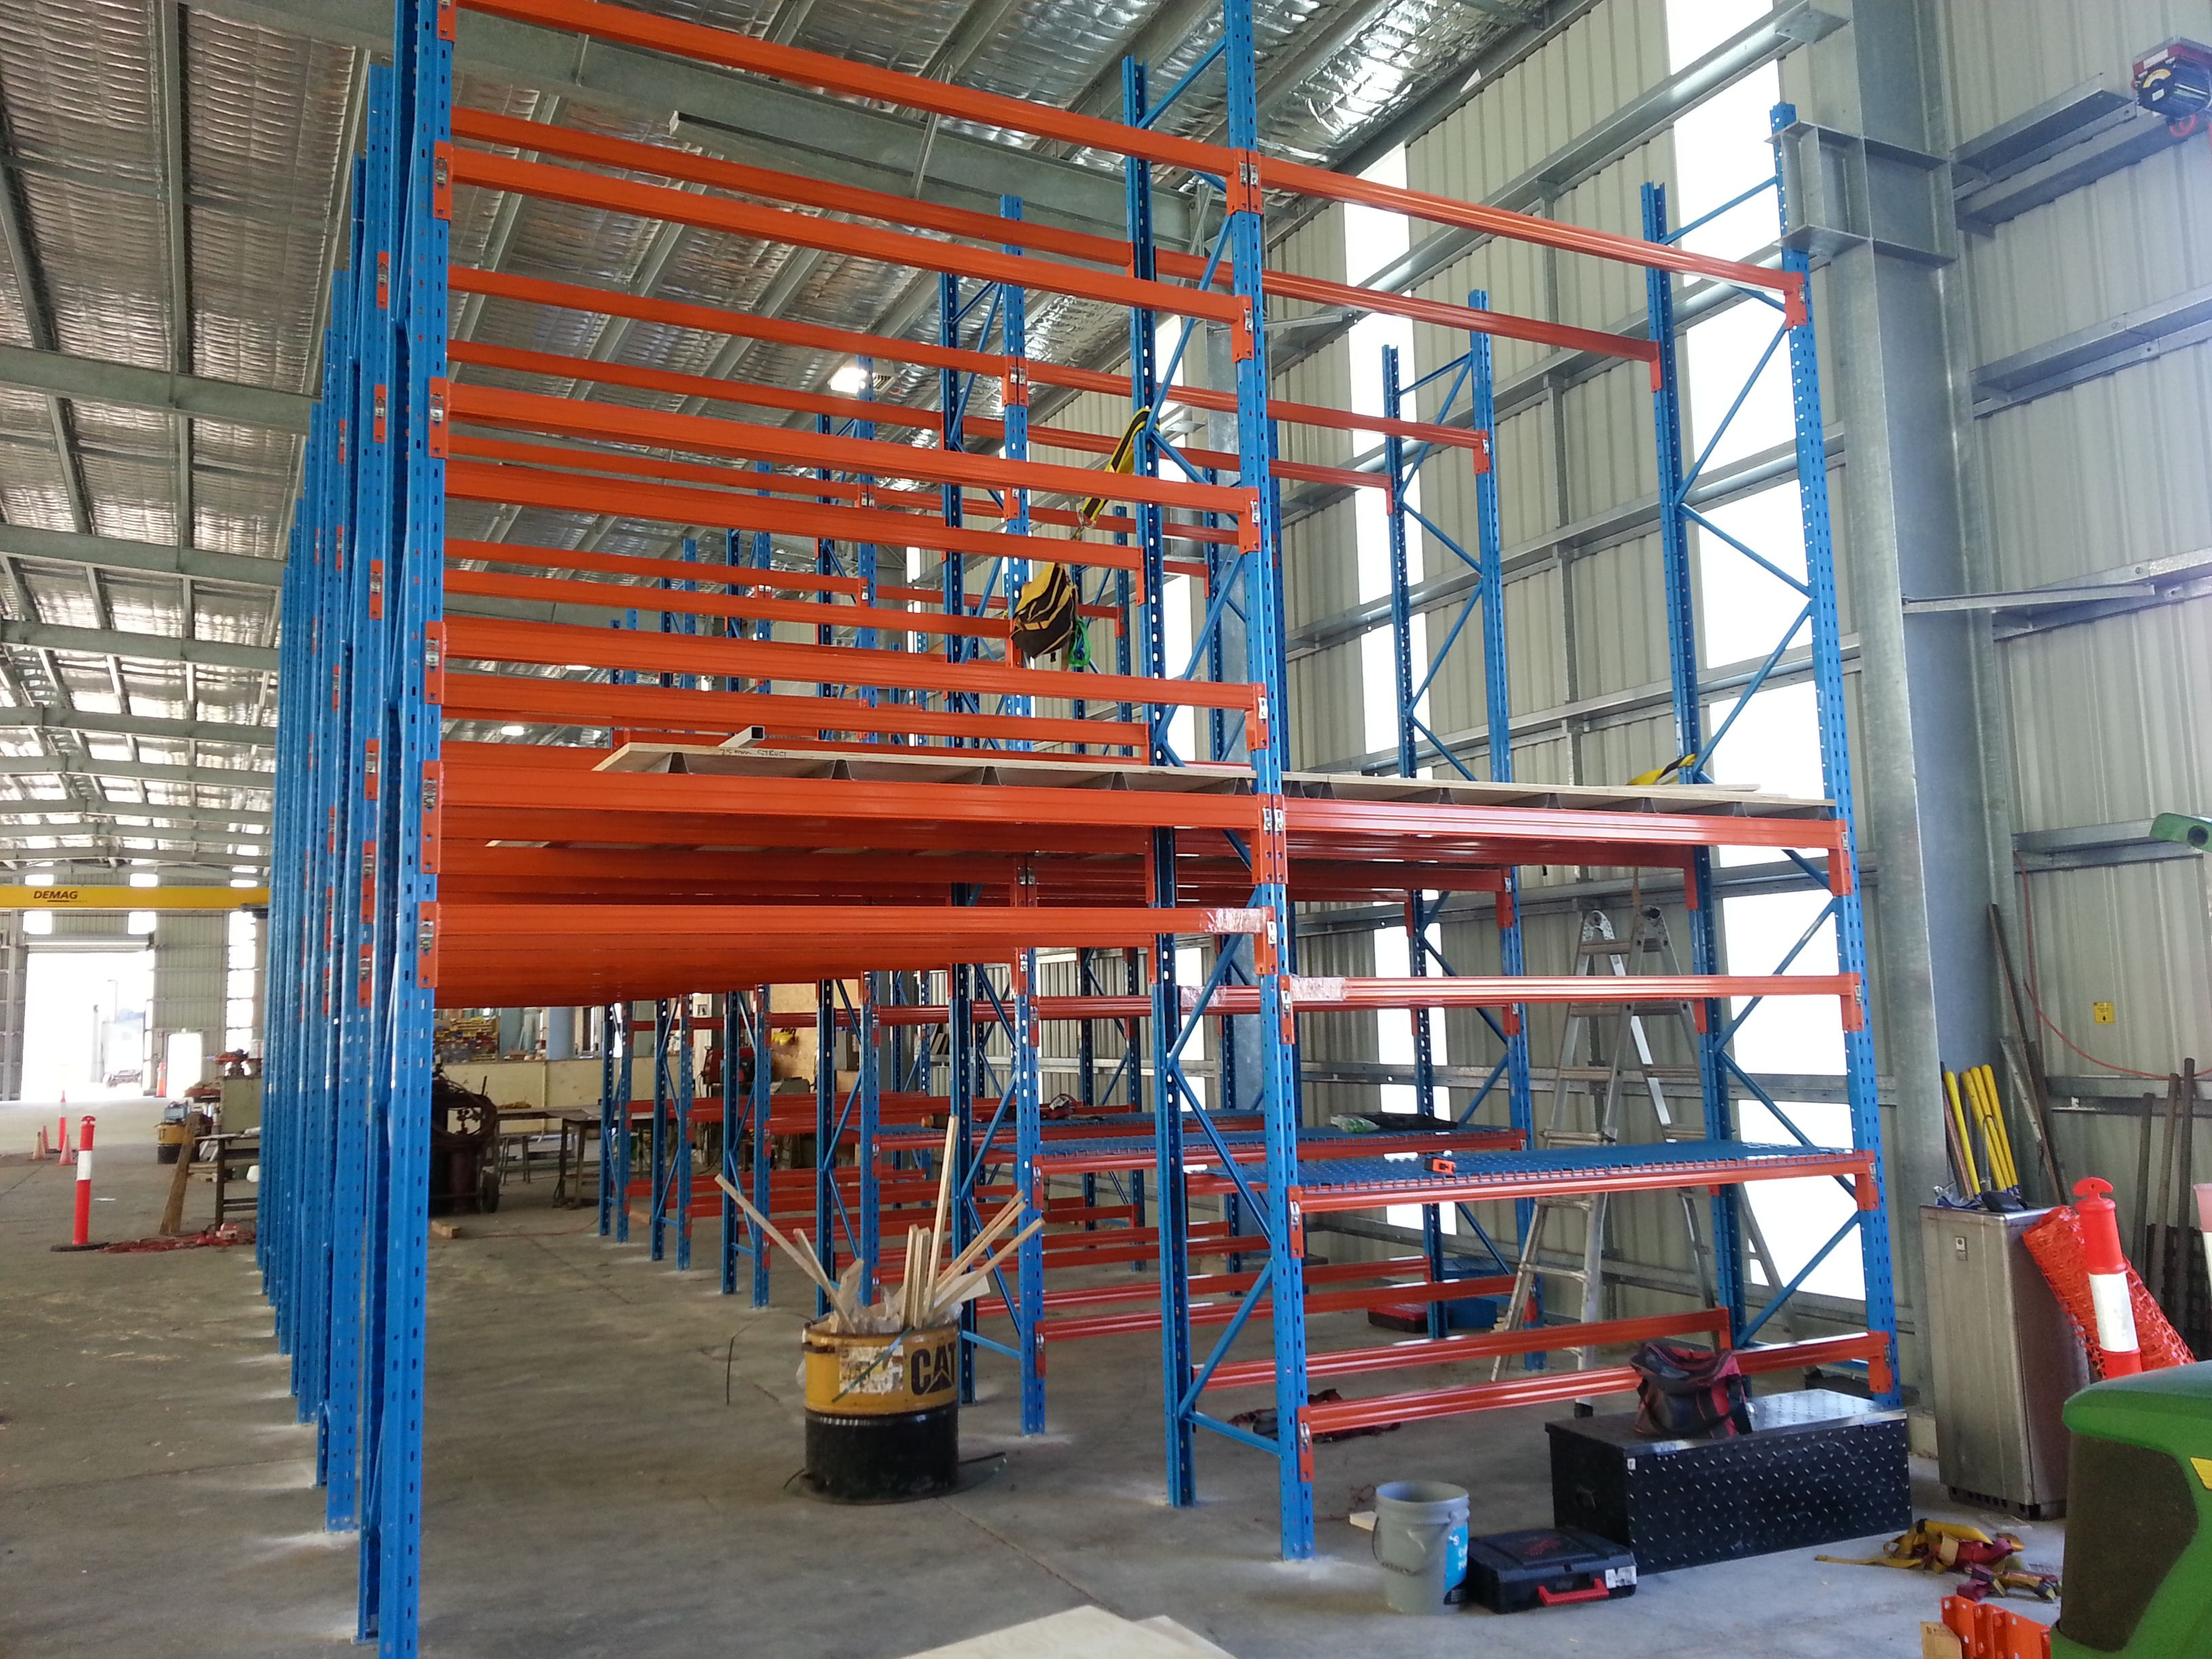 Using A Pallet Racking Framework For A Raised Storage Area Can Have Many Benefits Pallet Rack Pallet Racking System